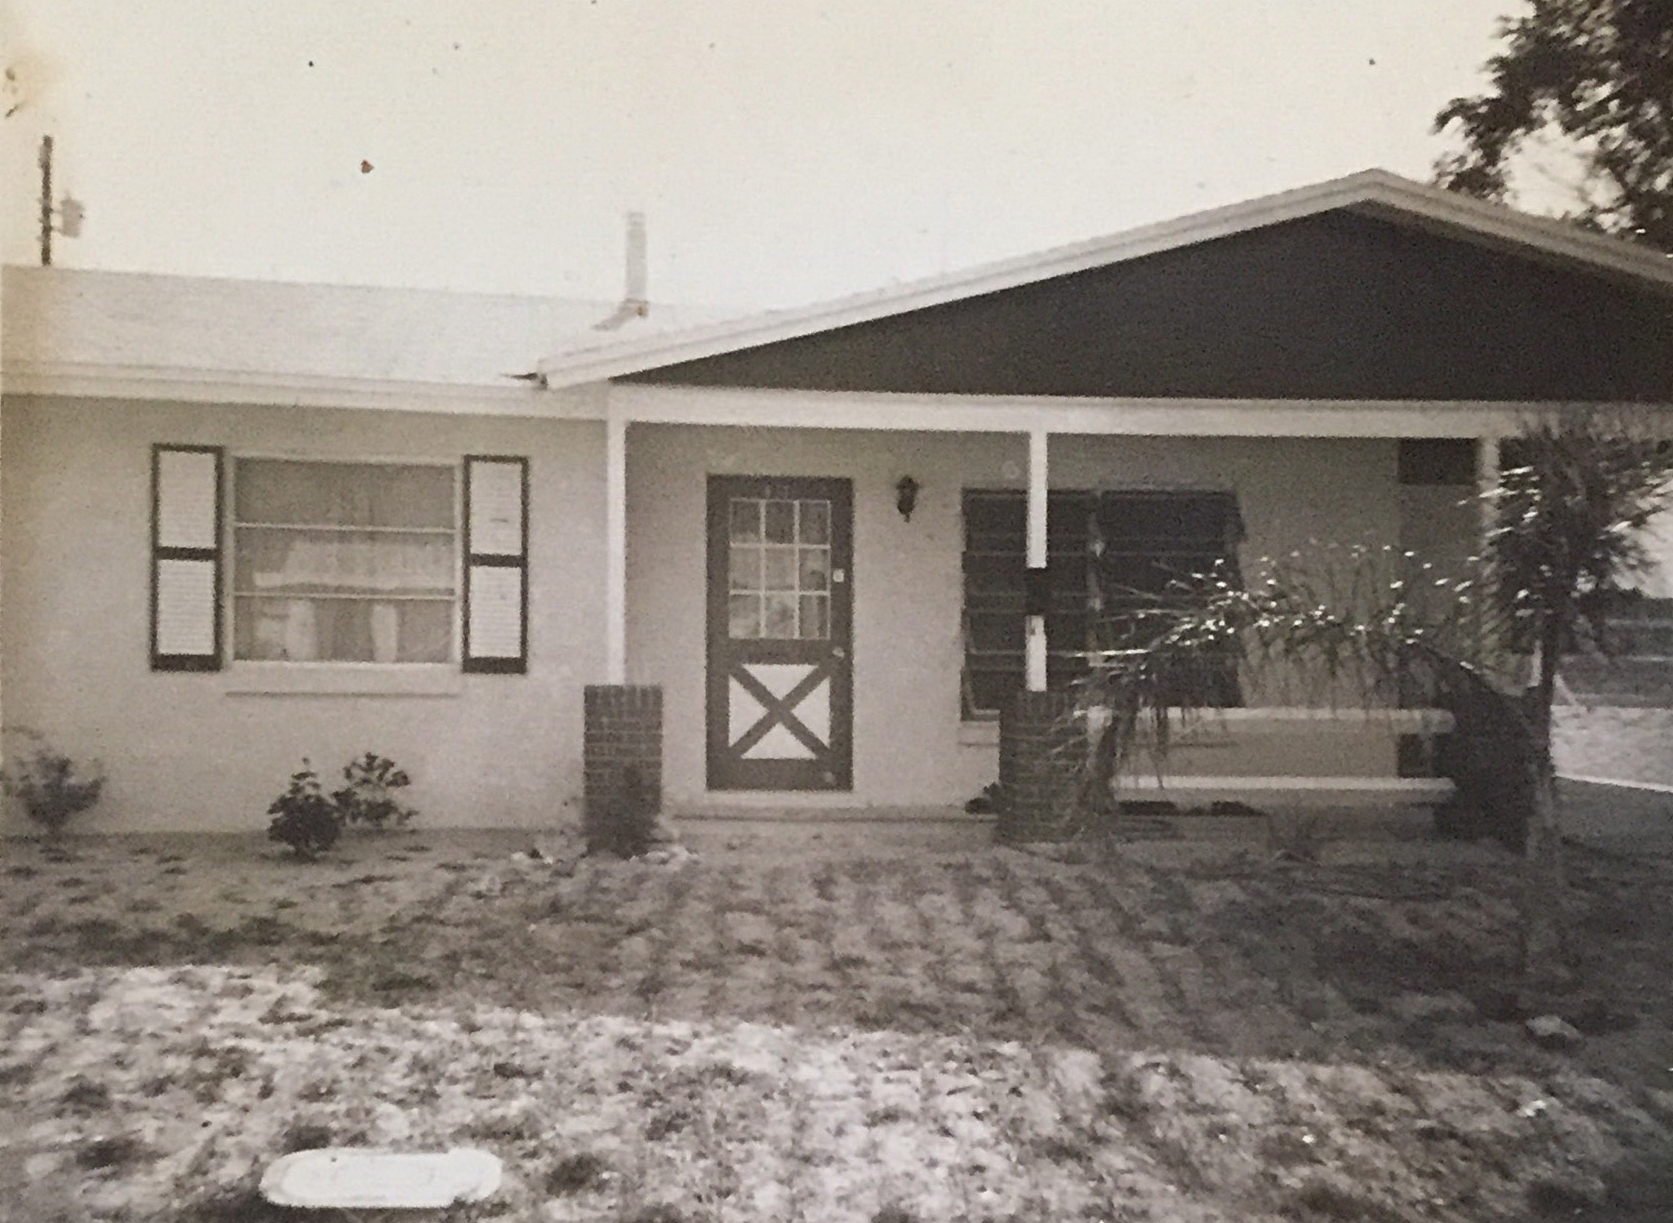 Photograph of   621 Cedar Park Drive in Daytona Beach, Florida. From the p  ersonal archive of Renata Cherlise